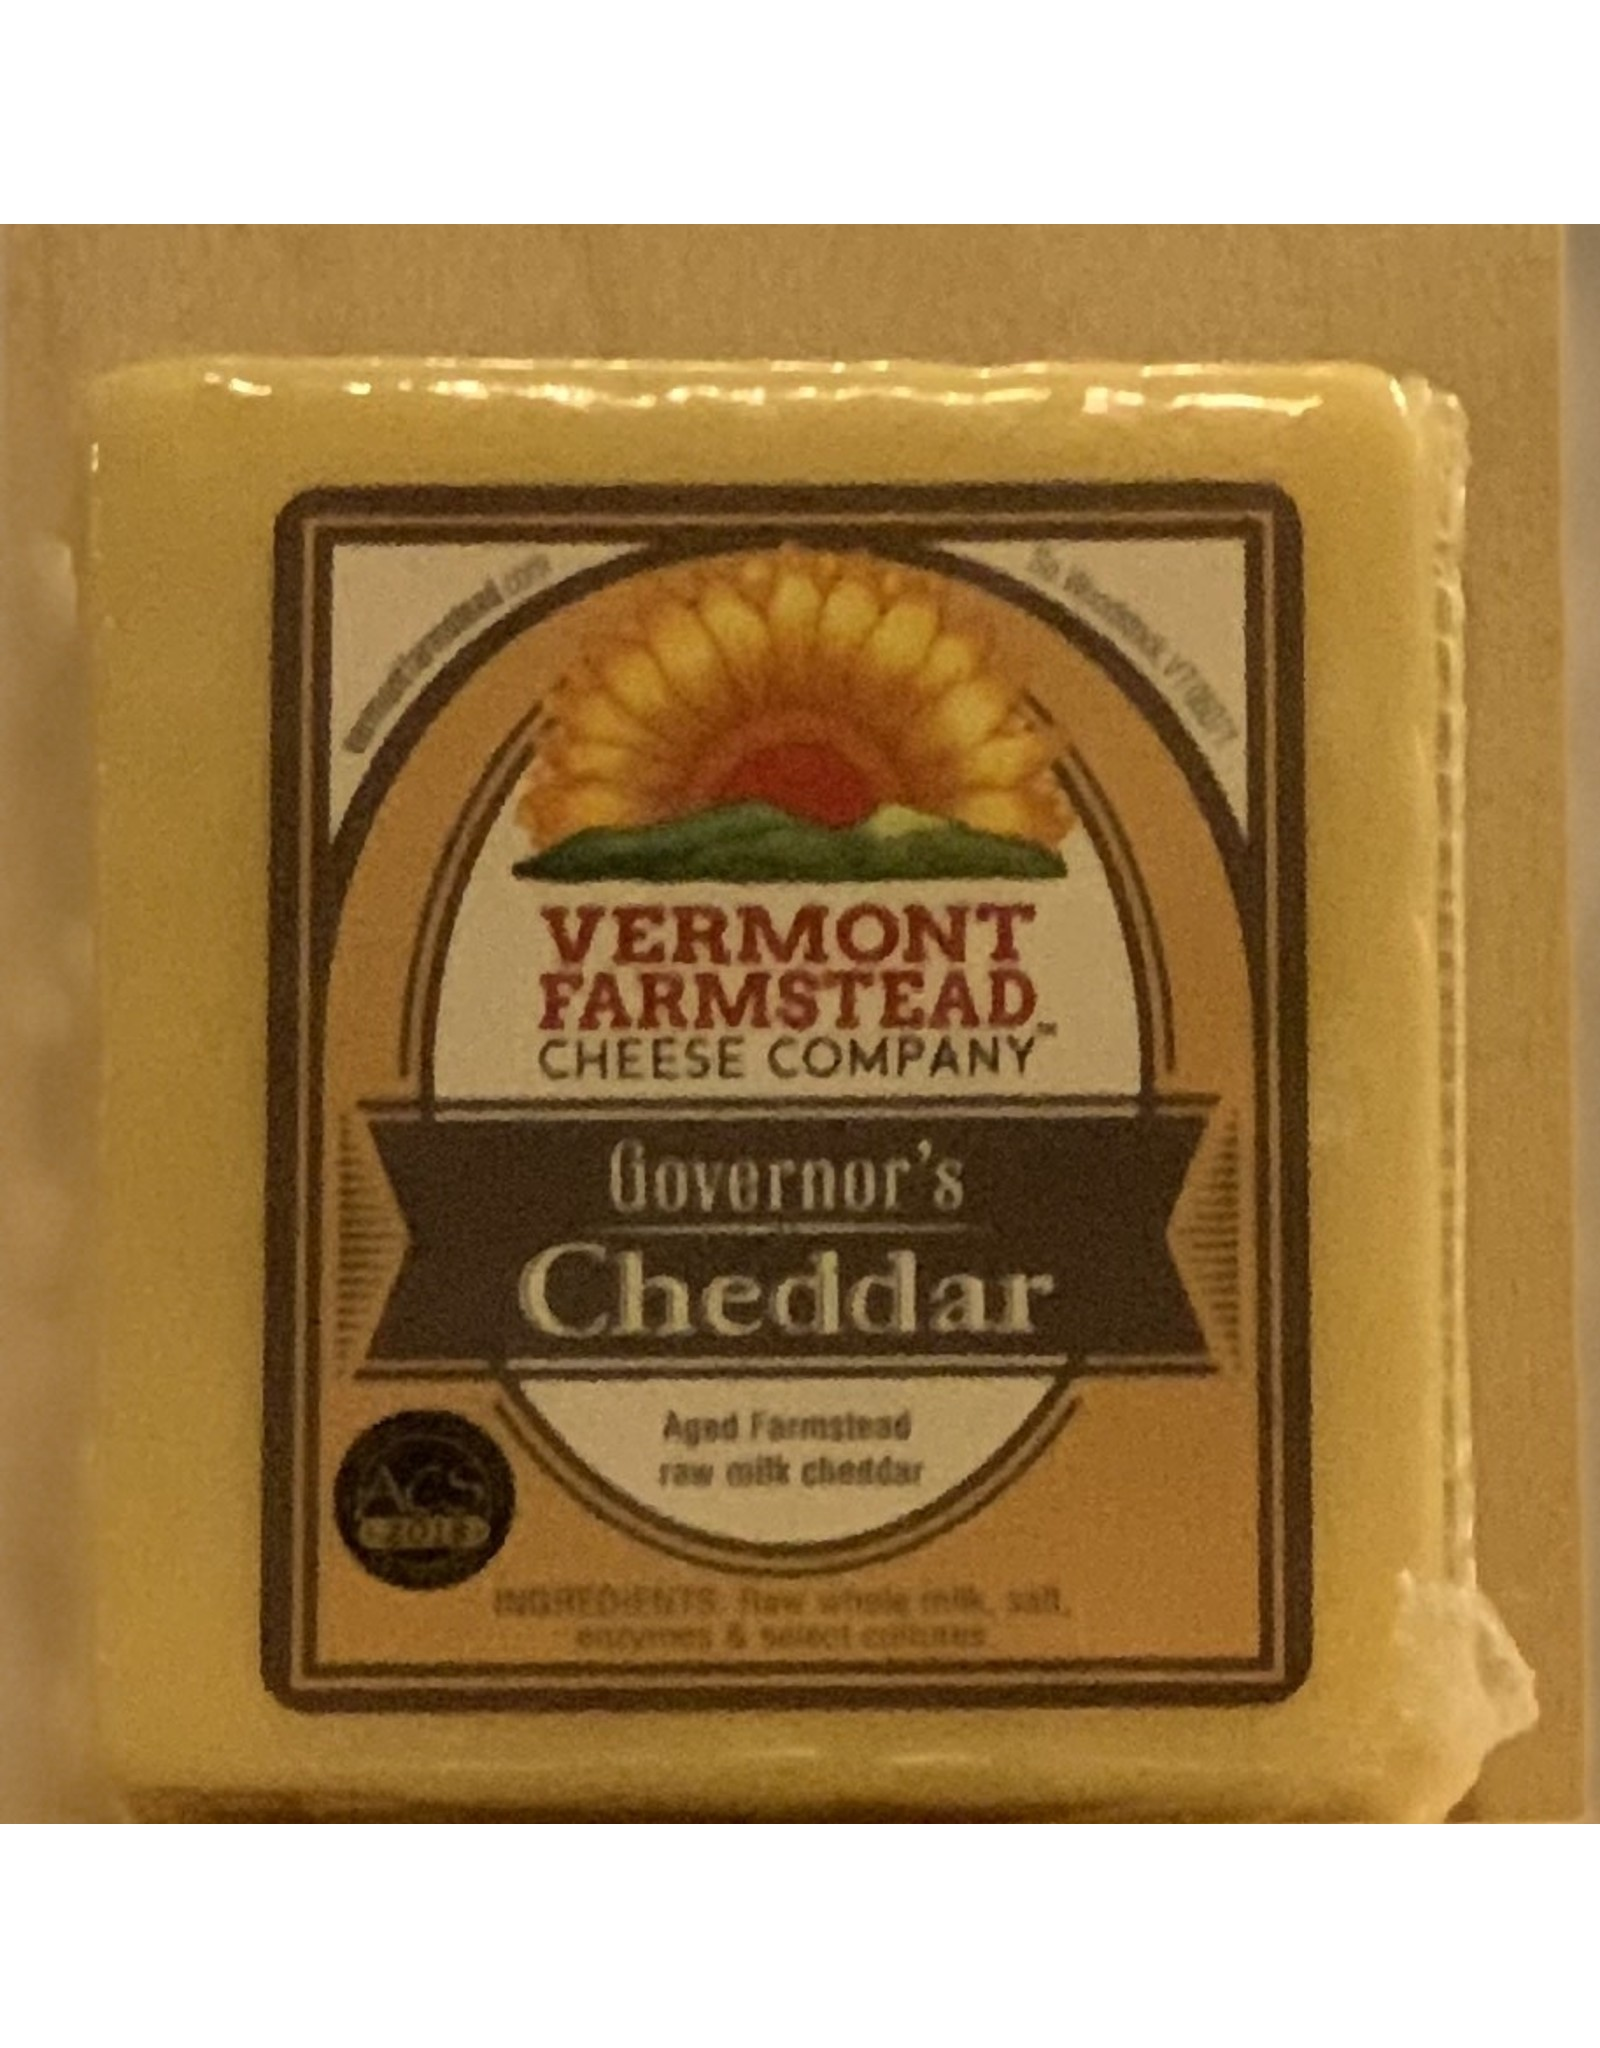 Cheese Vermont Farmstead Cheese Co. Governor's Cheddar - Vermont 7oz